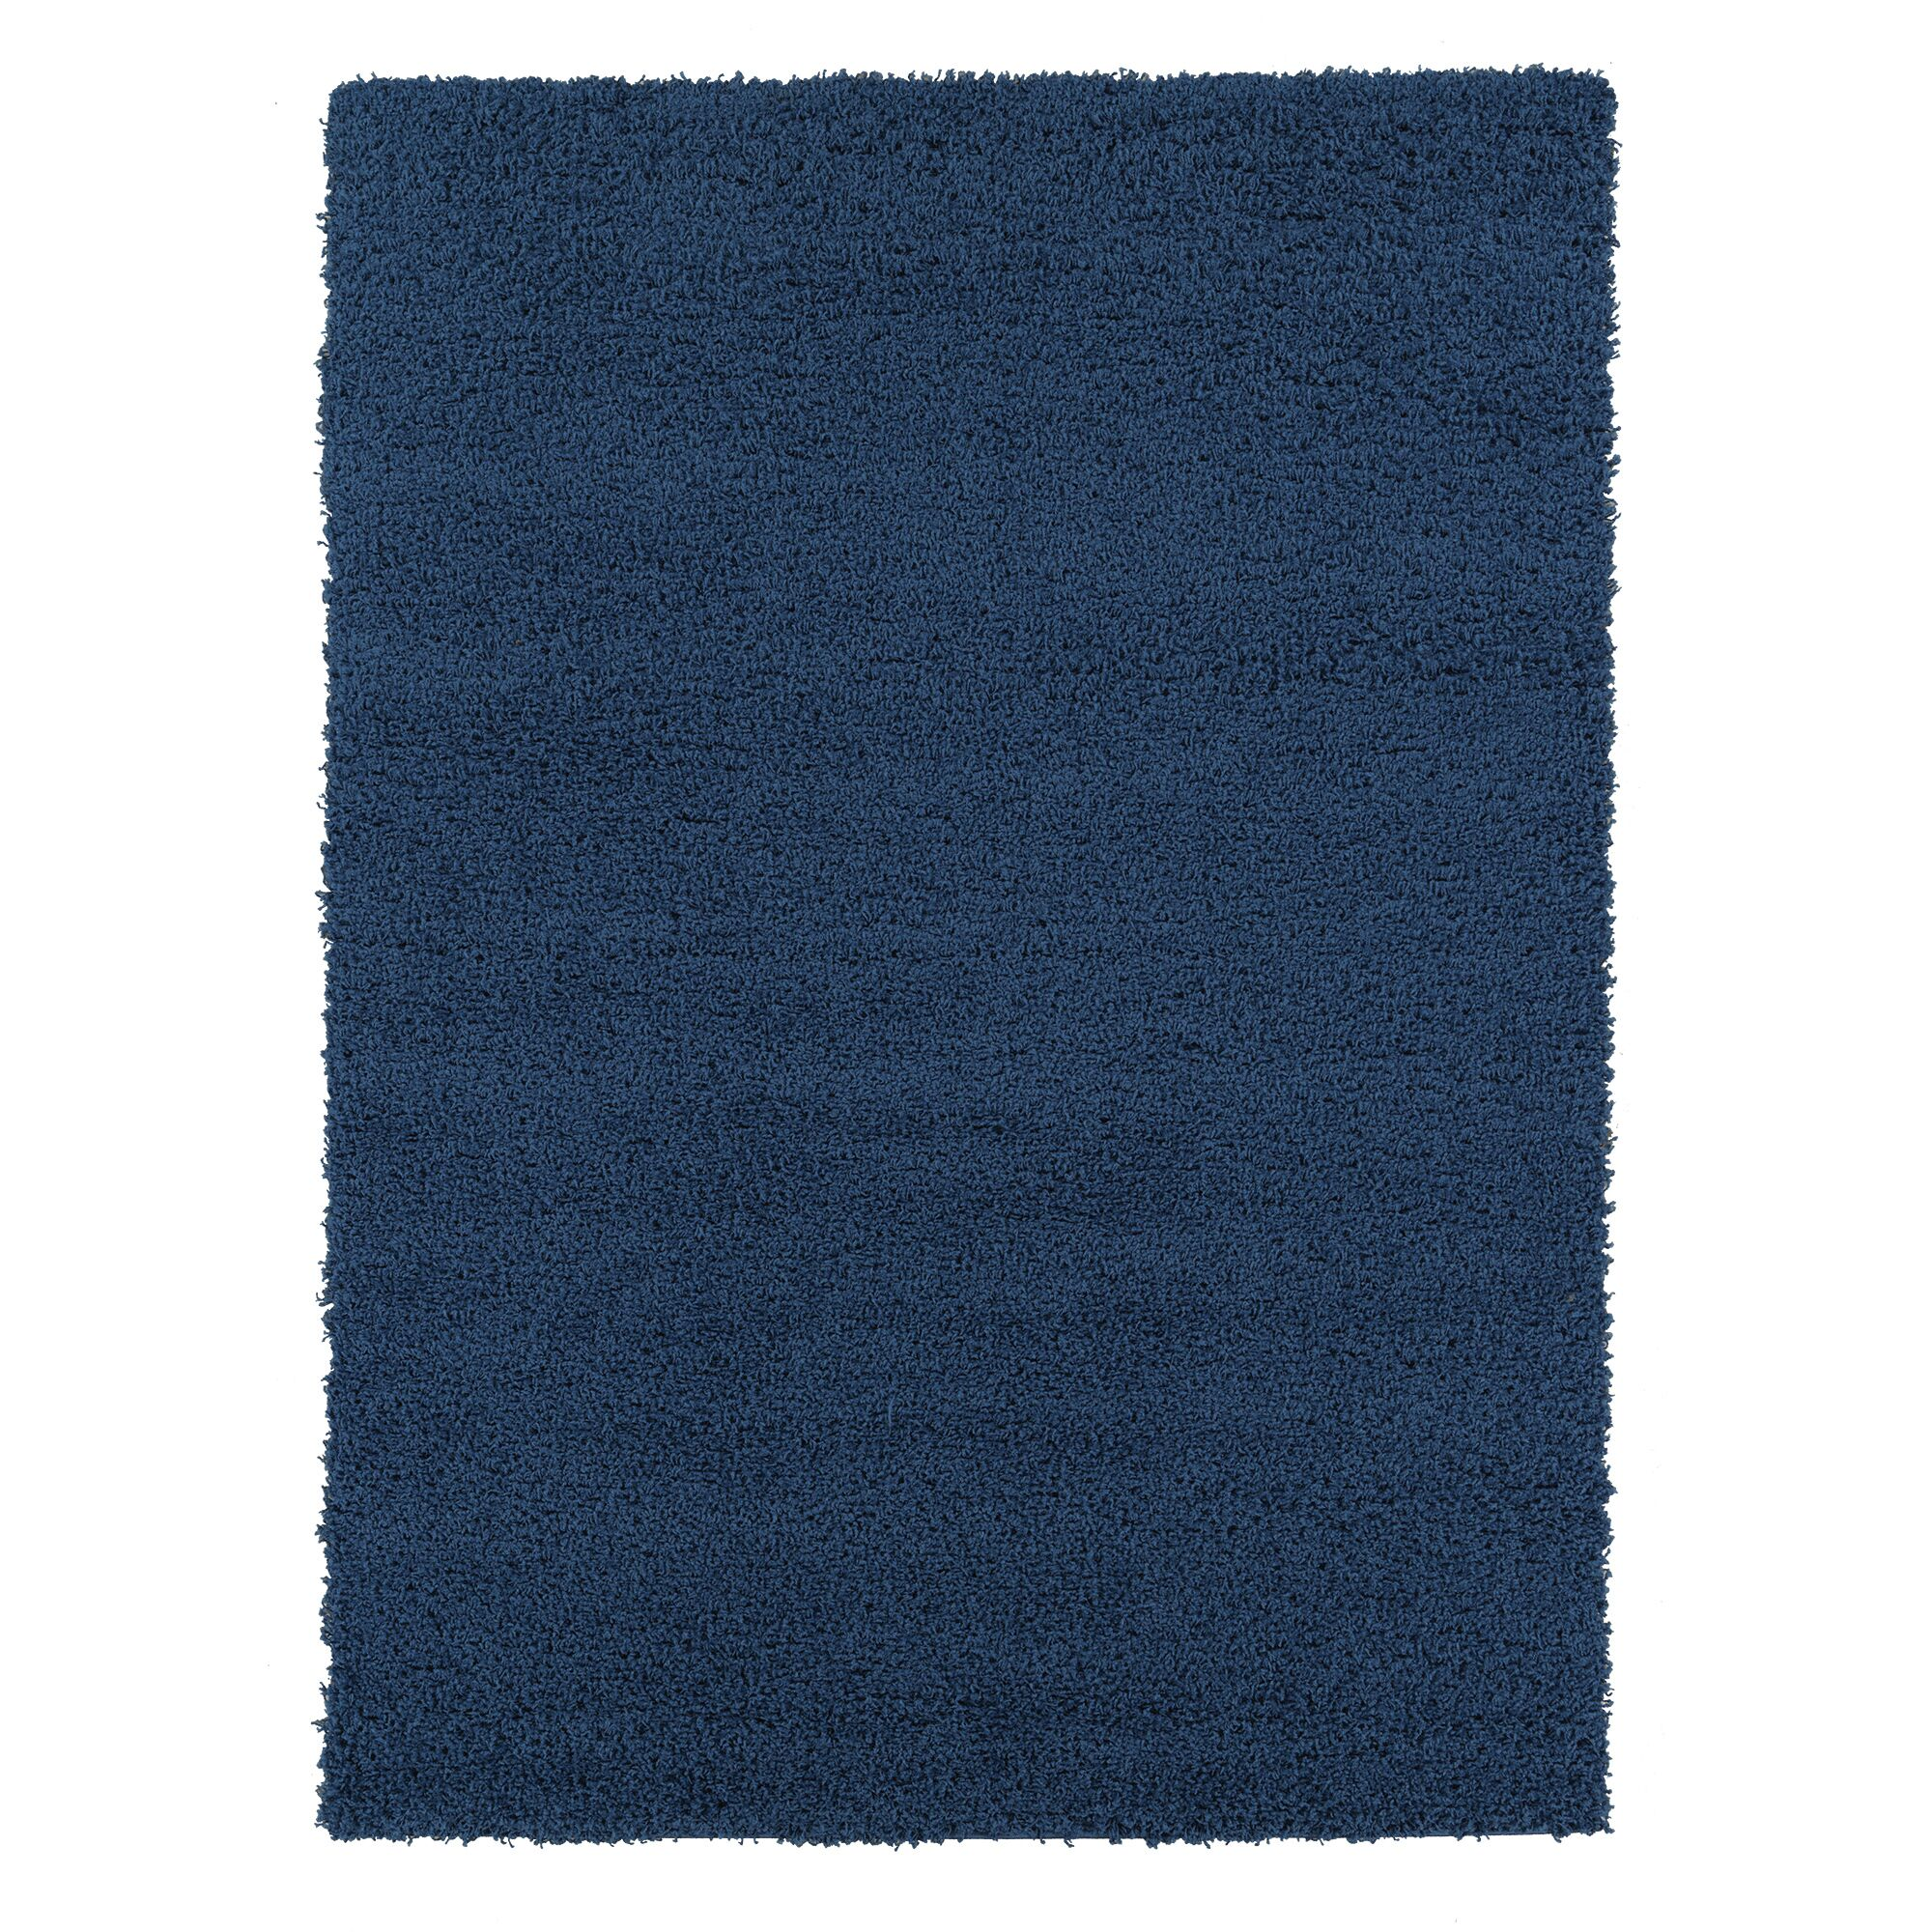 Navy Blue Area Rug Rug Size: Rectangle 7'10